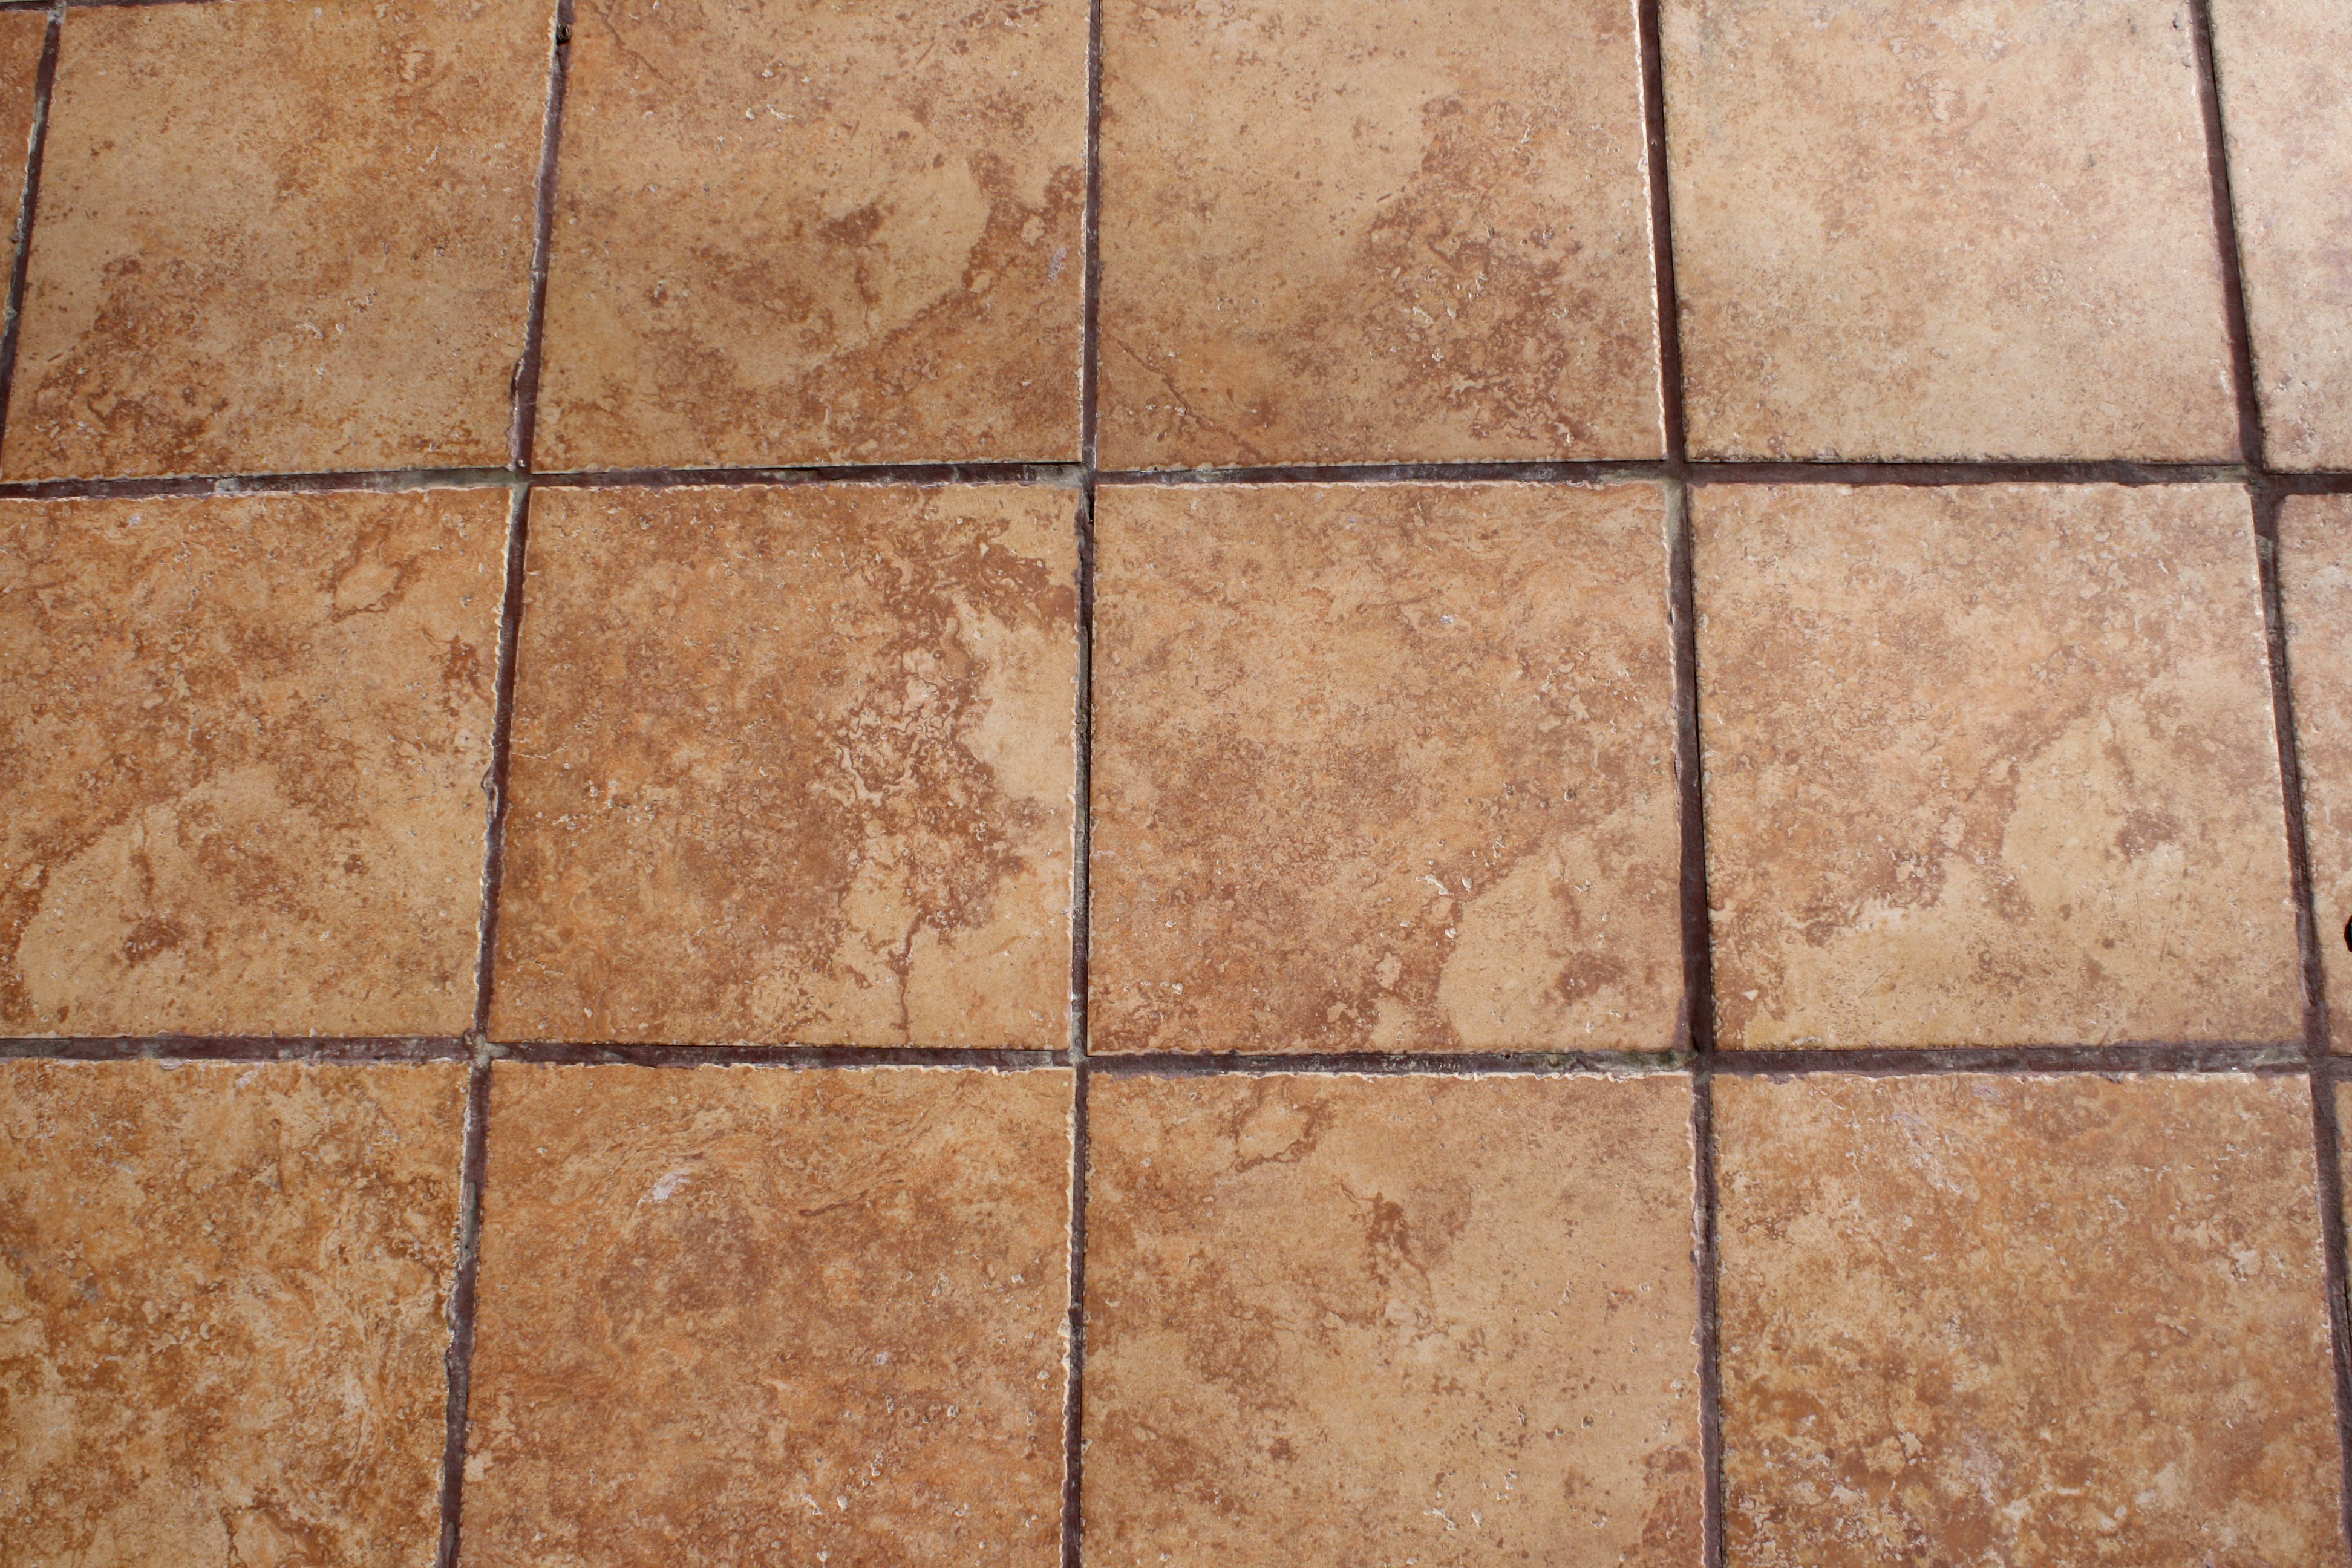 Light brown floor tiles texture picture free photograph photos public domain - Textuur tiling ...